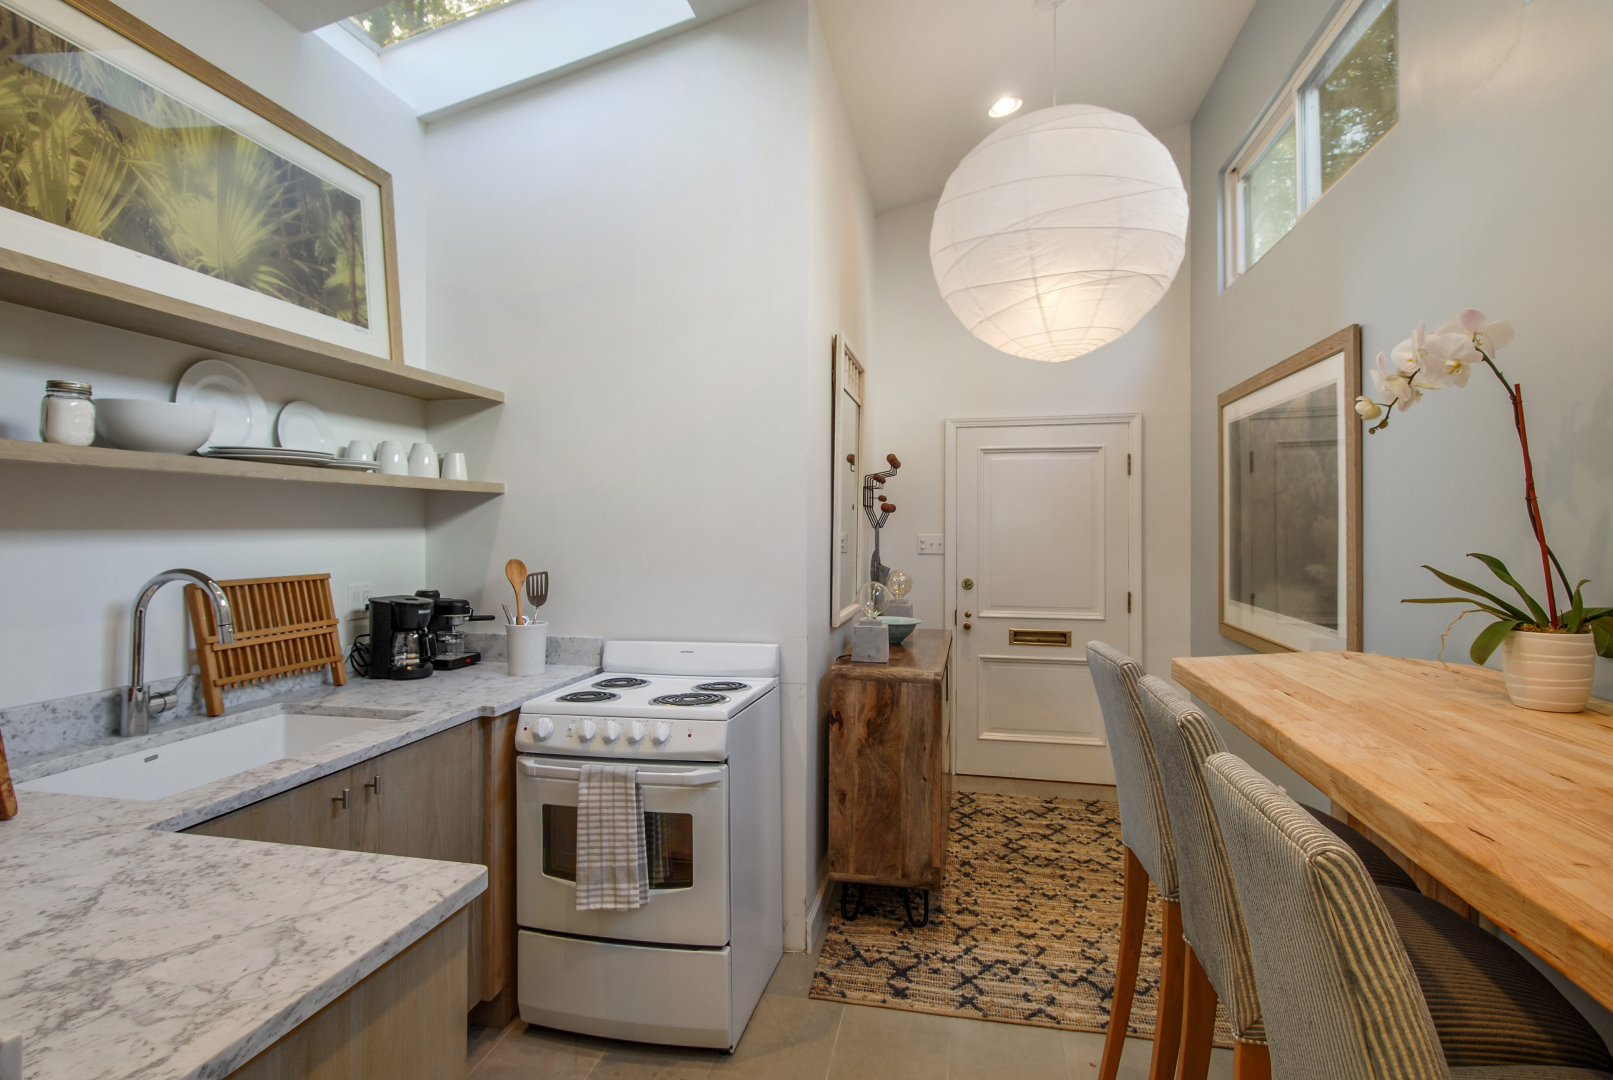 Uptown, Apartment, 1 beds, 1.0 baths, $1900 per month New Orleans Rental - devie image_4